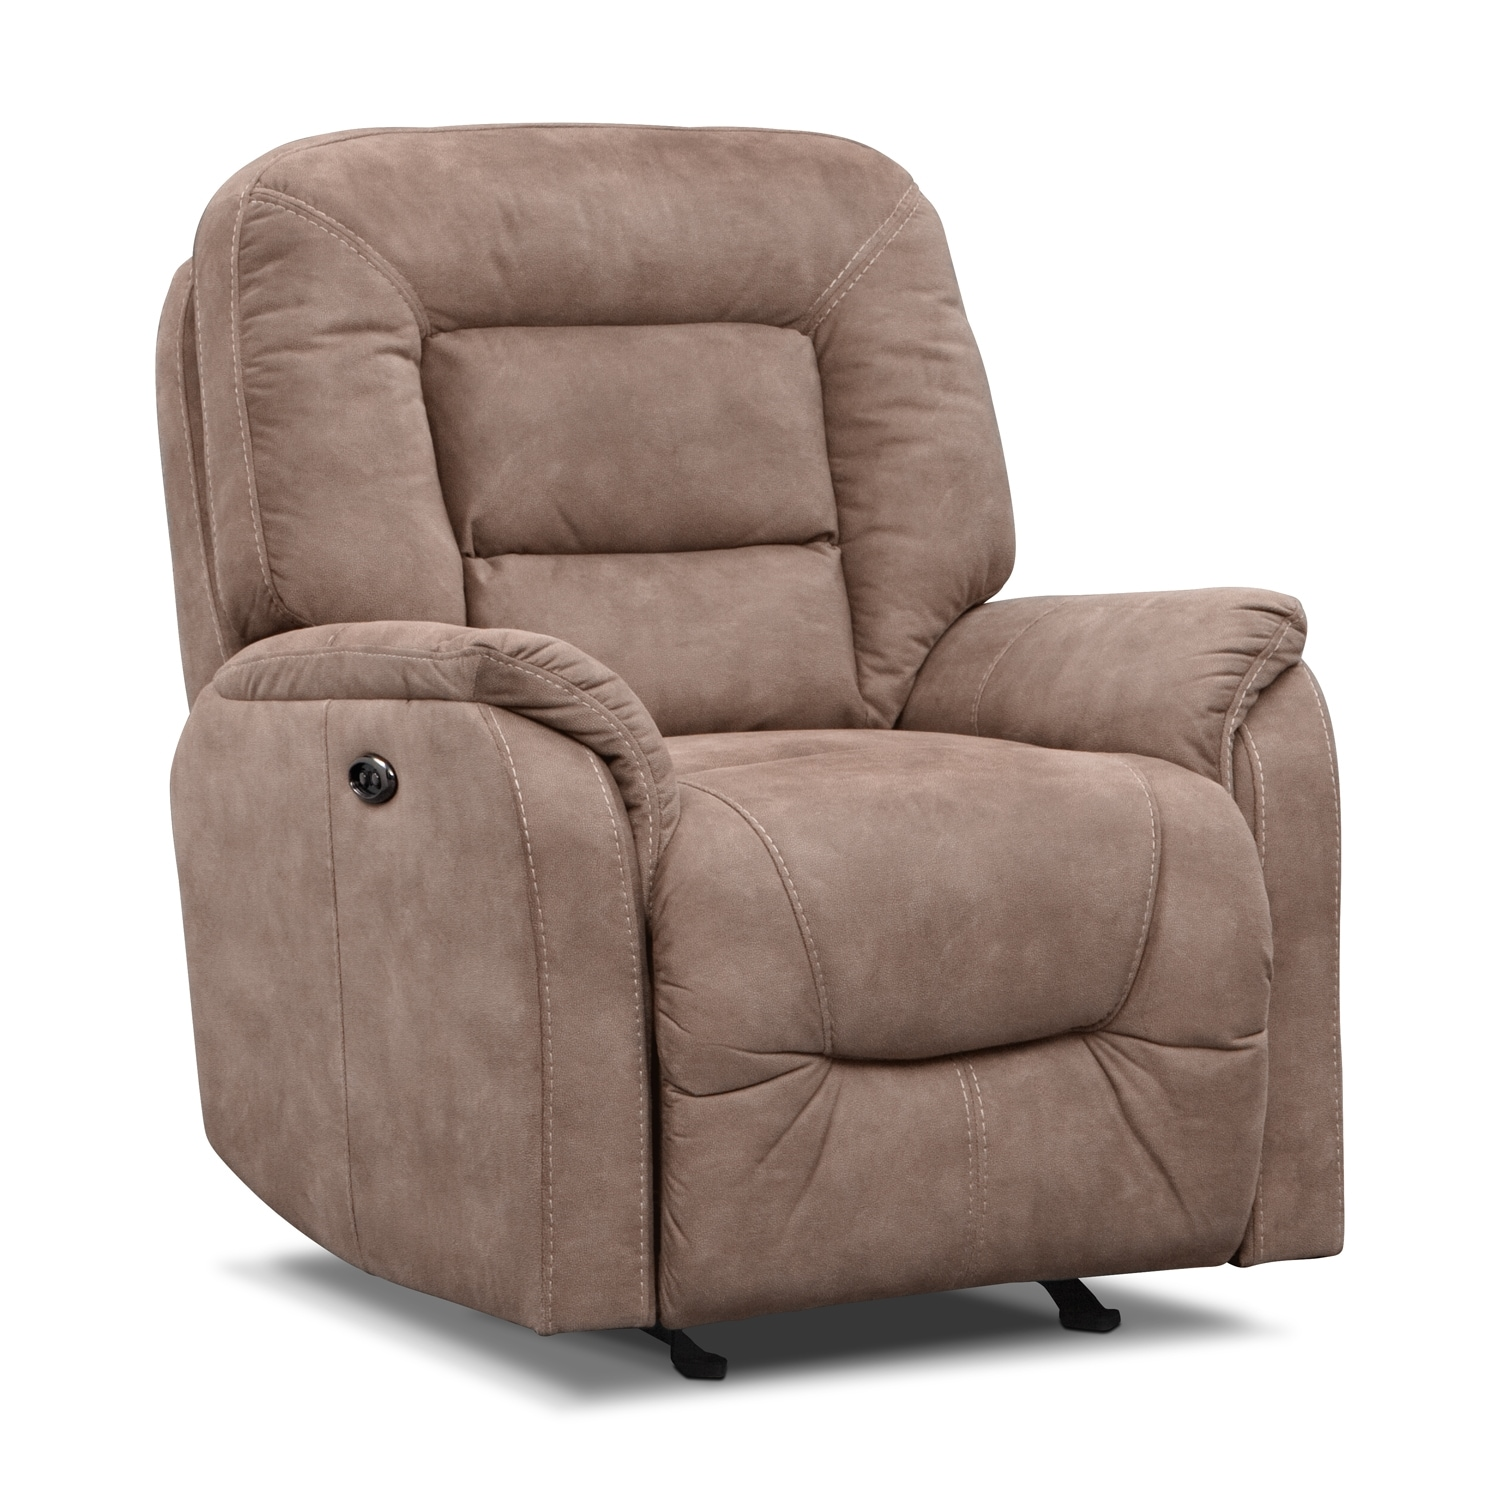 Darien Power Glider Recliner - Taupe by One80  sc 1 st  Value City Furniture & Darien Power Glider Recliner - Taupe | Value City Furniture islam-shia.org